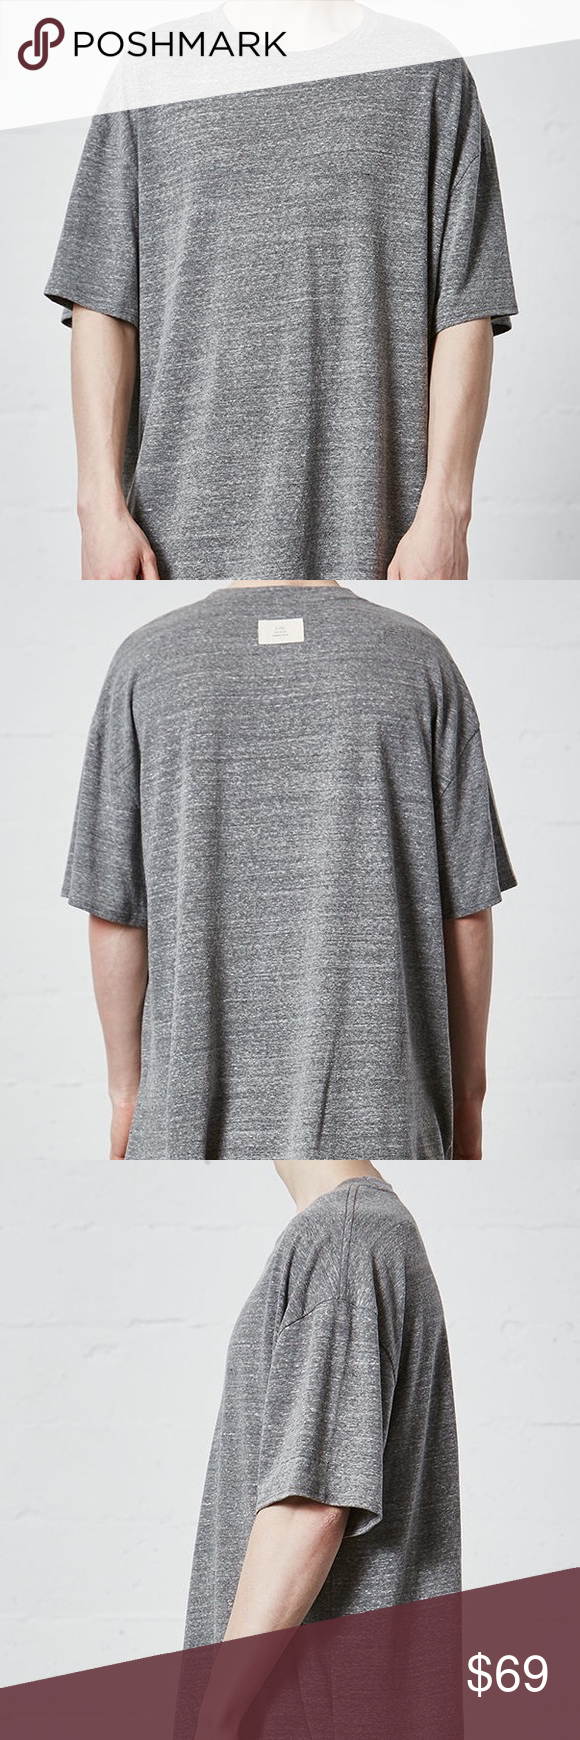 82a0768277a10 FOG Fear Of God Pacsun Essentials Grey T Shirt Med The Tri-Blend Boxy T